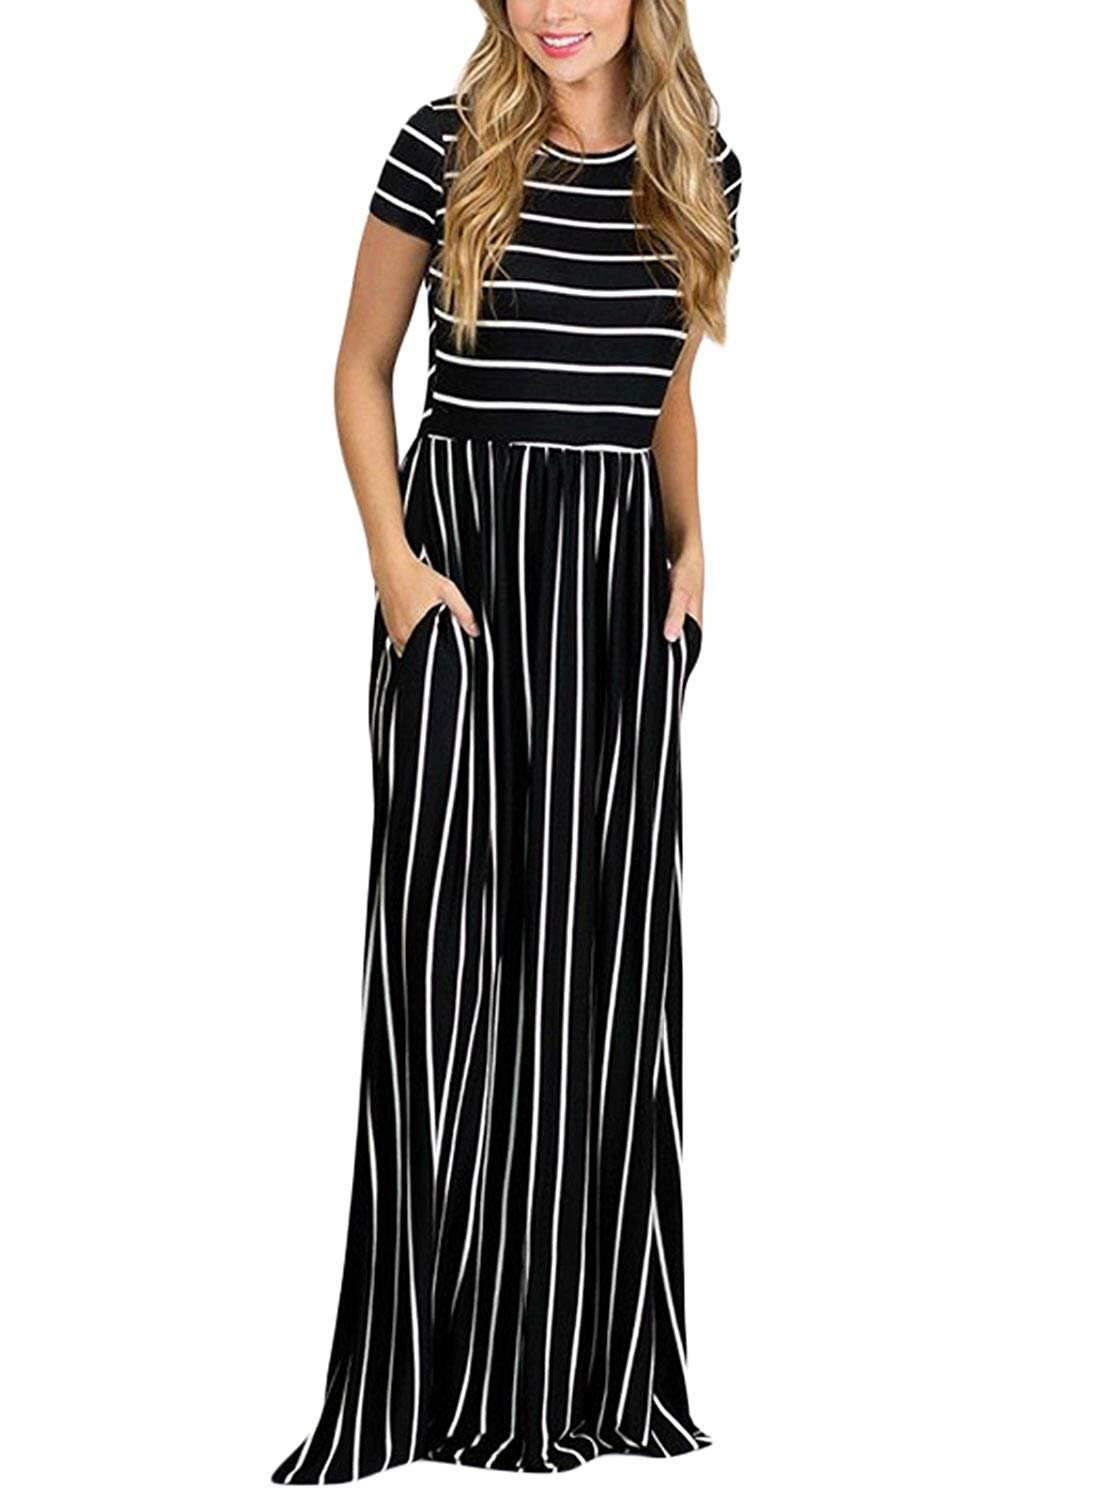 HOTAPEI Women`s Summer Casual Loose Striped Long Dress Short Sleeve Pocket Maxi Dress (並行輸入品) B07FD2C8XM X-Large|Black and White Striped Black and White Striped X-Large